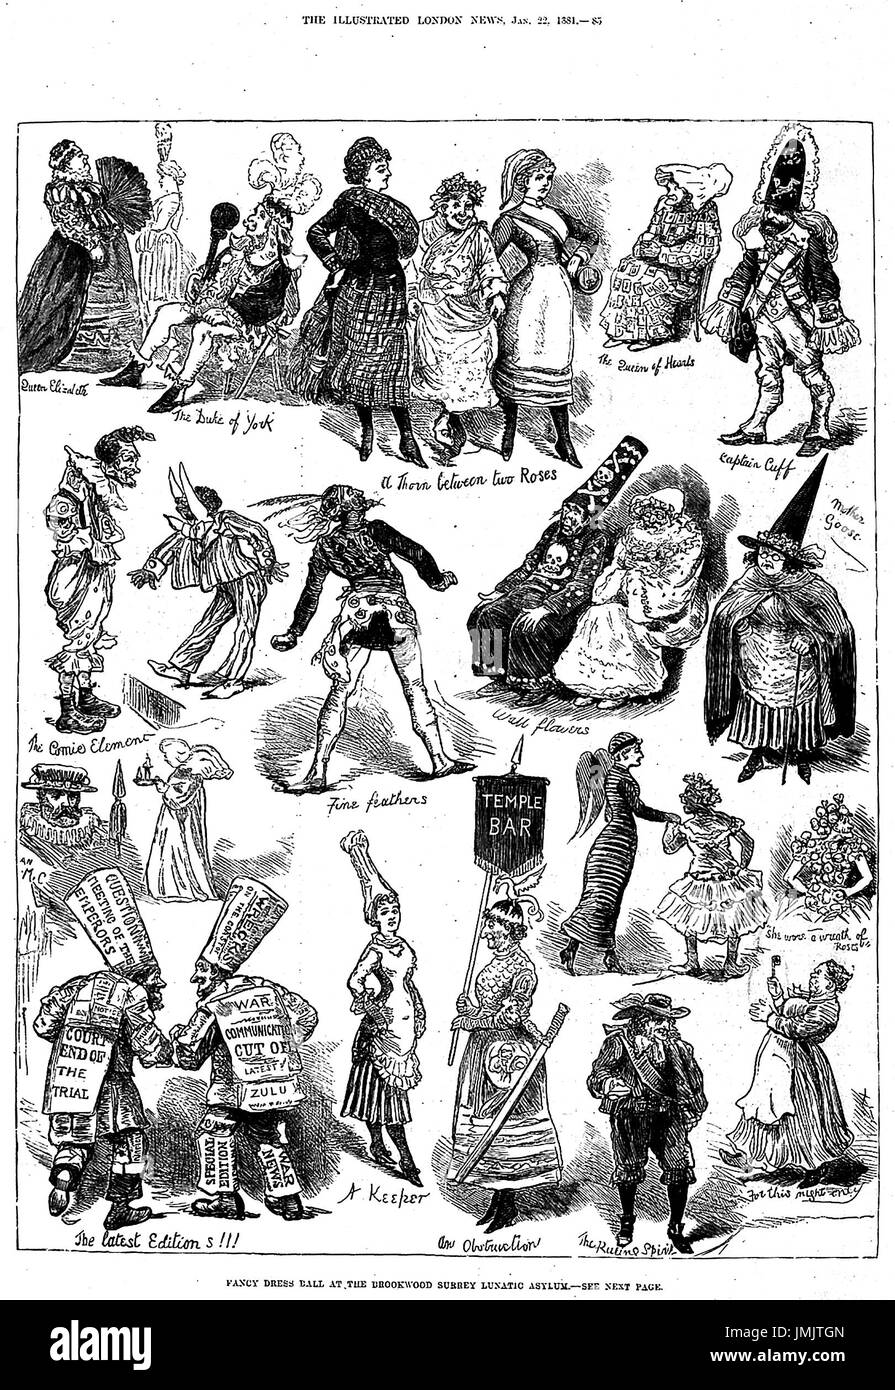 FANCY DRESS BALL BROOKWOOD LUNATIC ASYLUM wie gezeigt in der Illustrated London News im Januar 1881 Stockbild